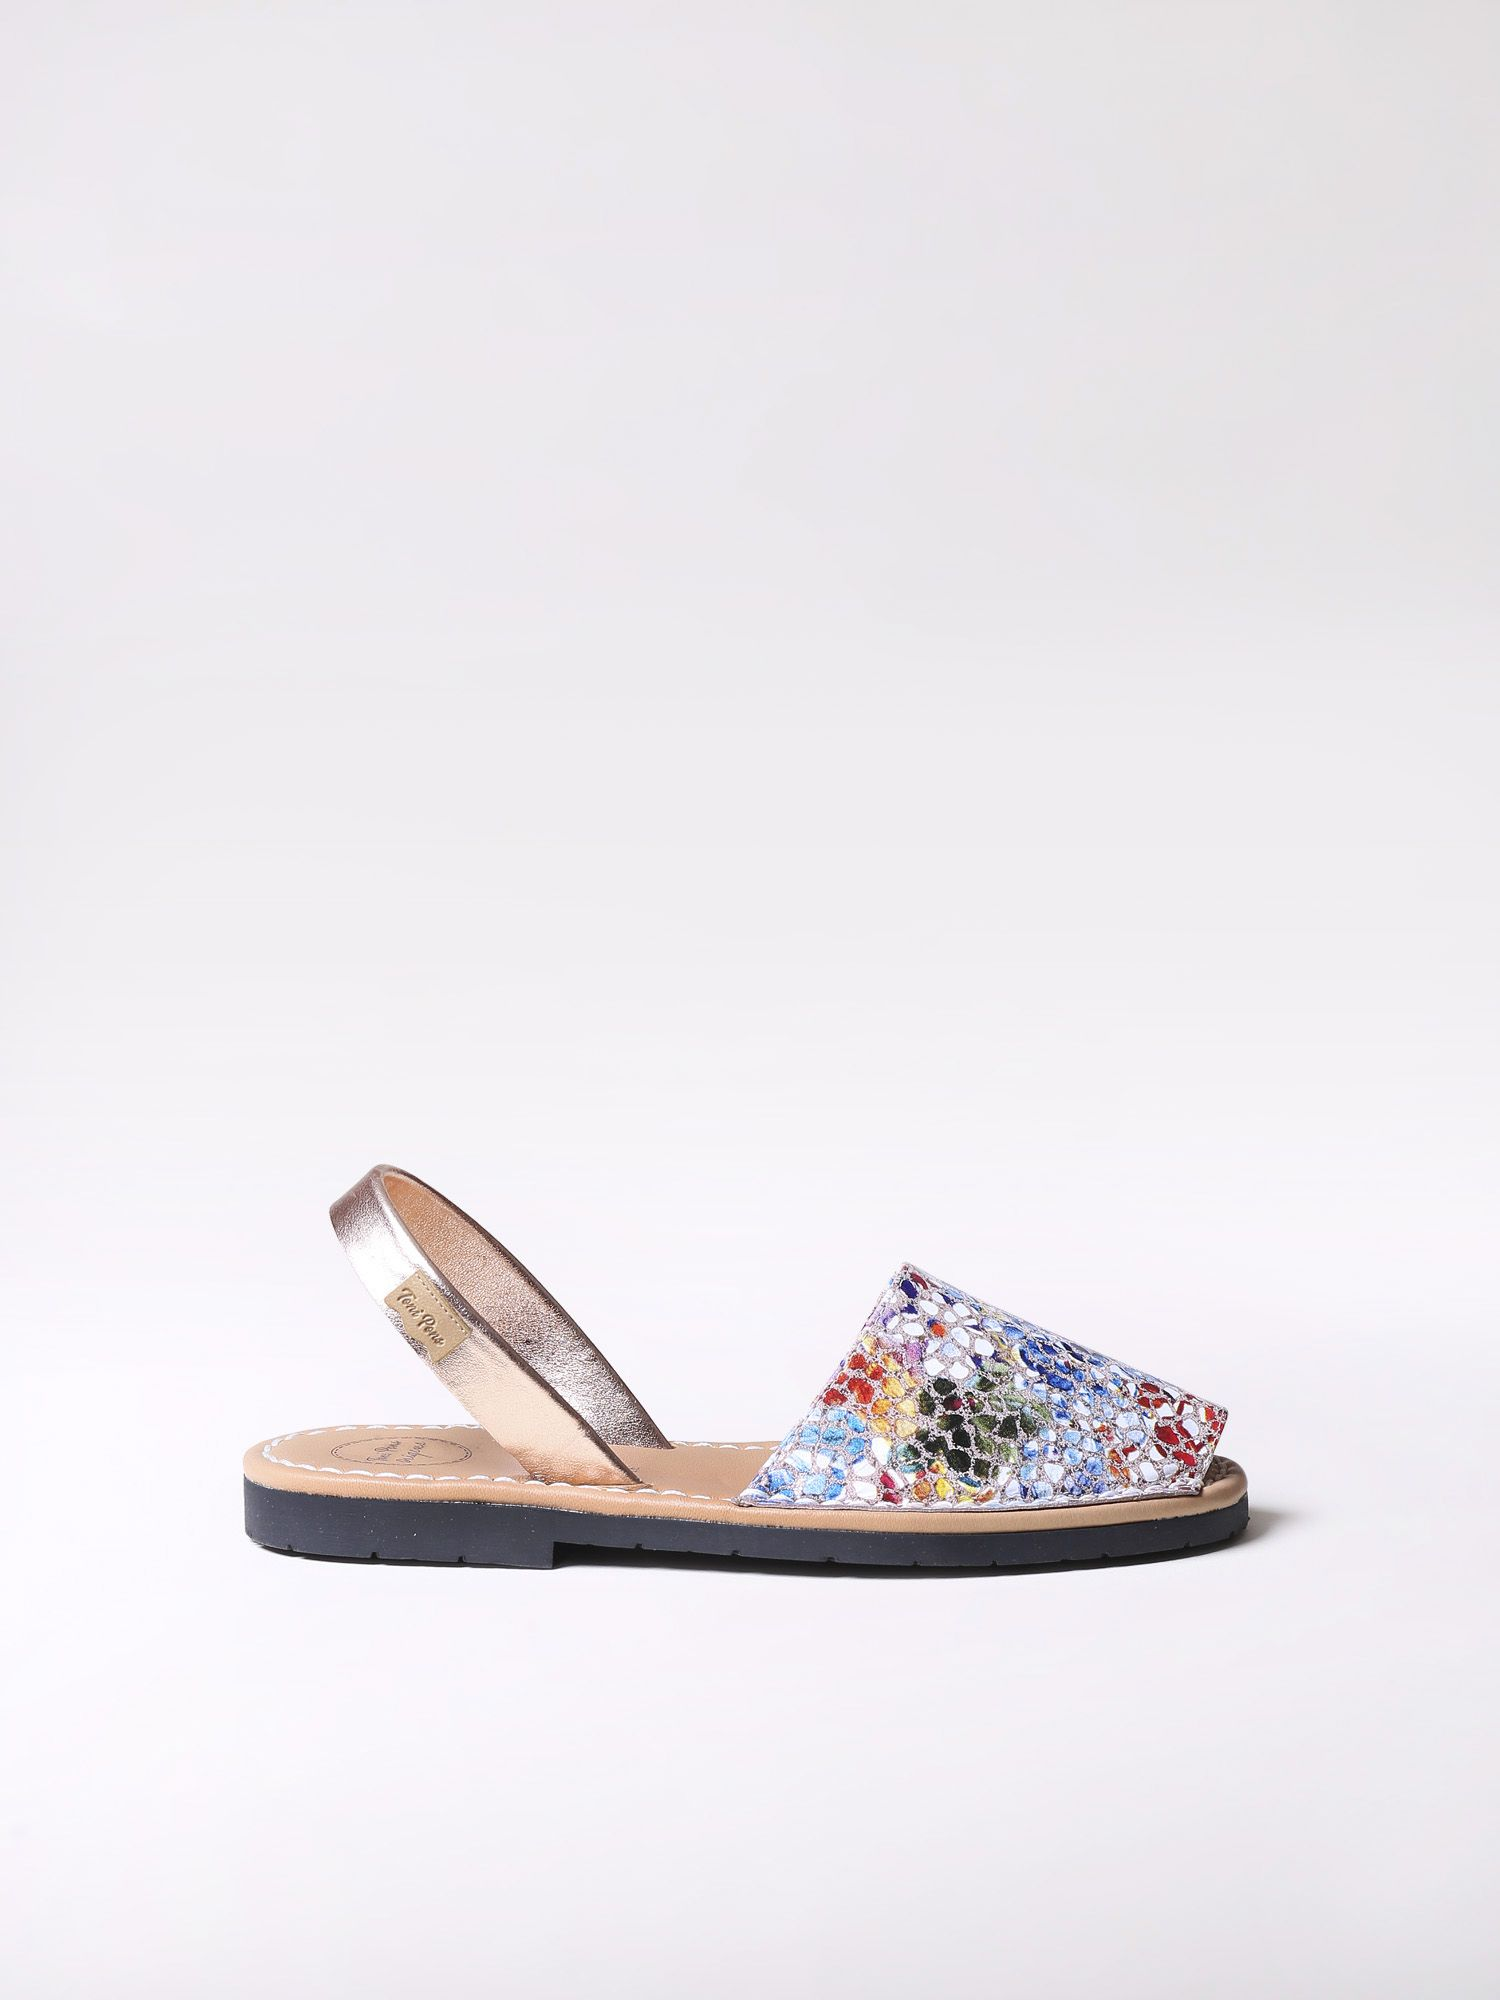 Leather avarca sandal - MAO-PM